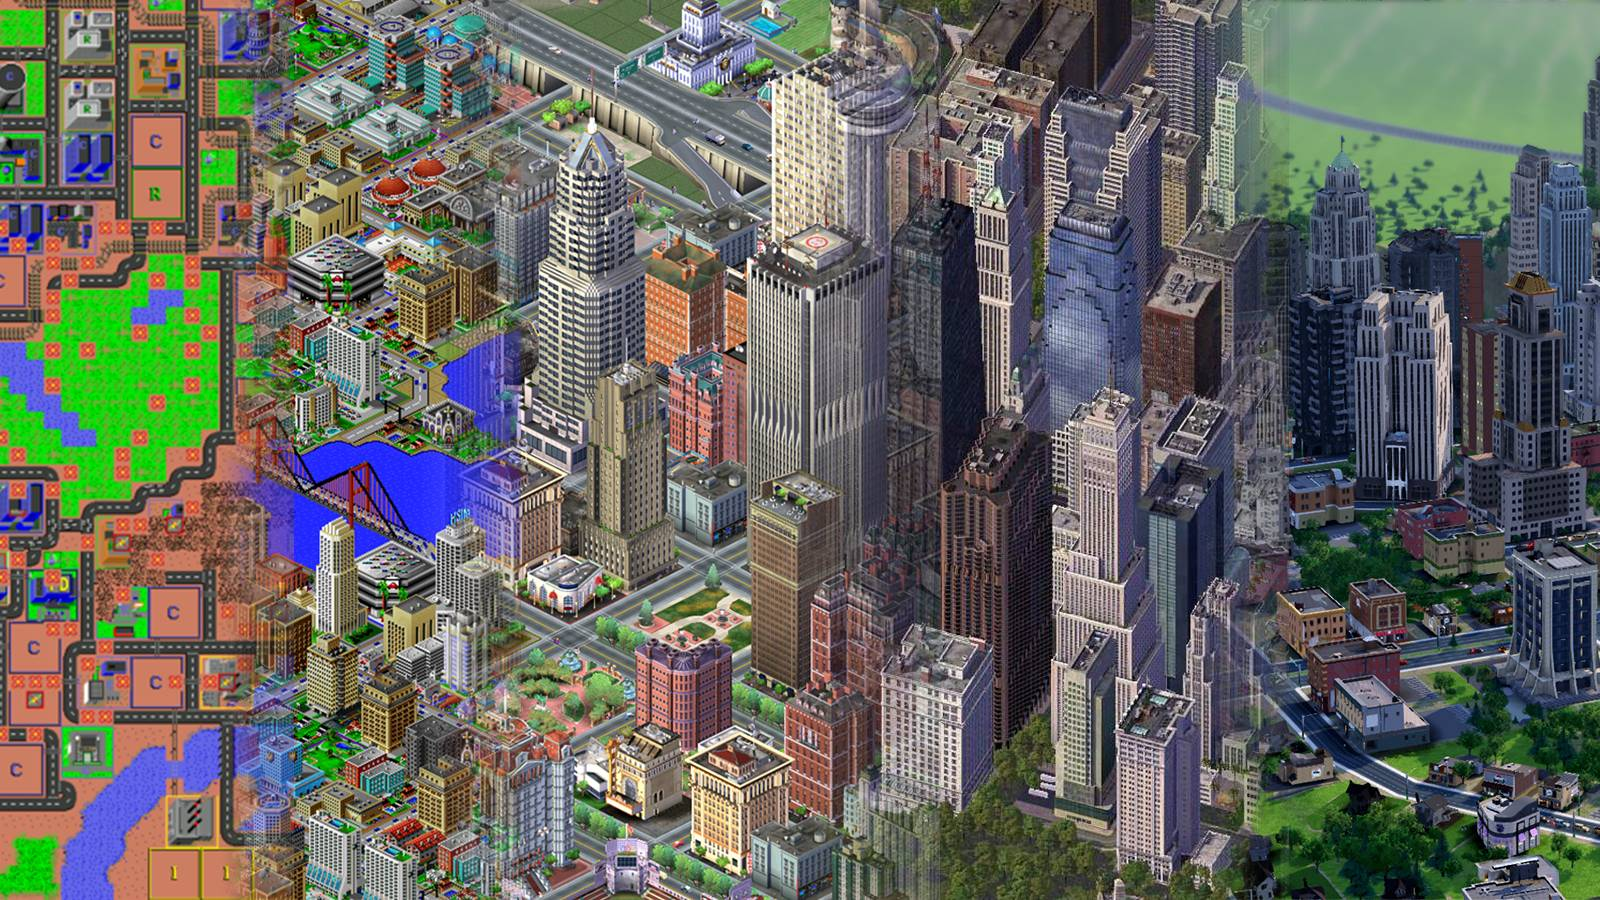 I made a wallpapers showing the Evolution of SimCity : SimCity